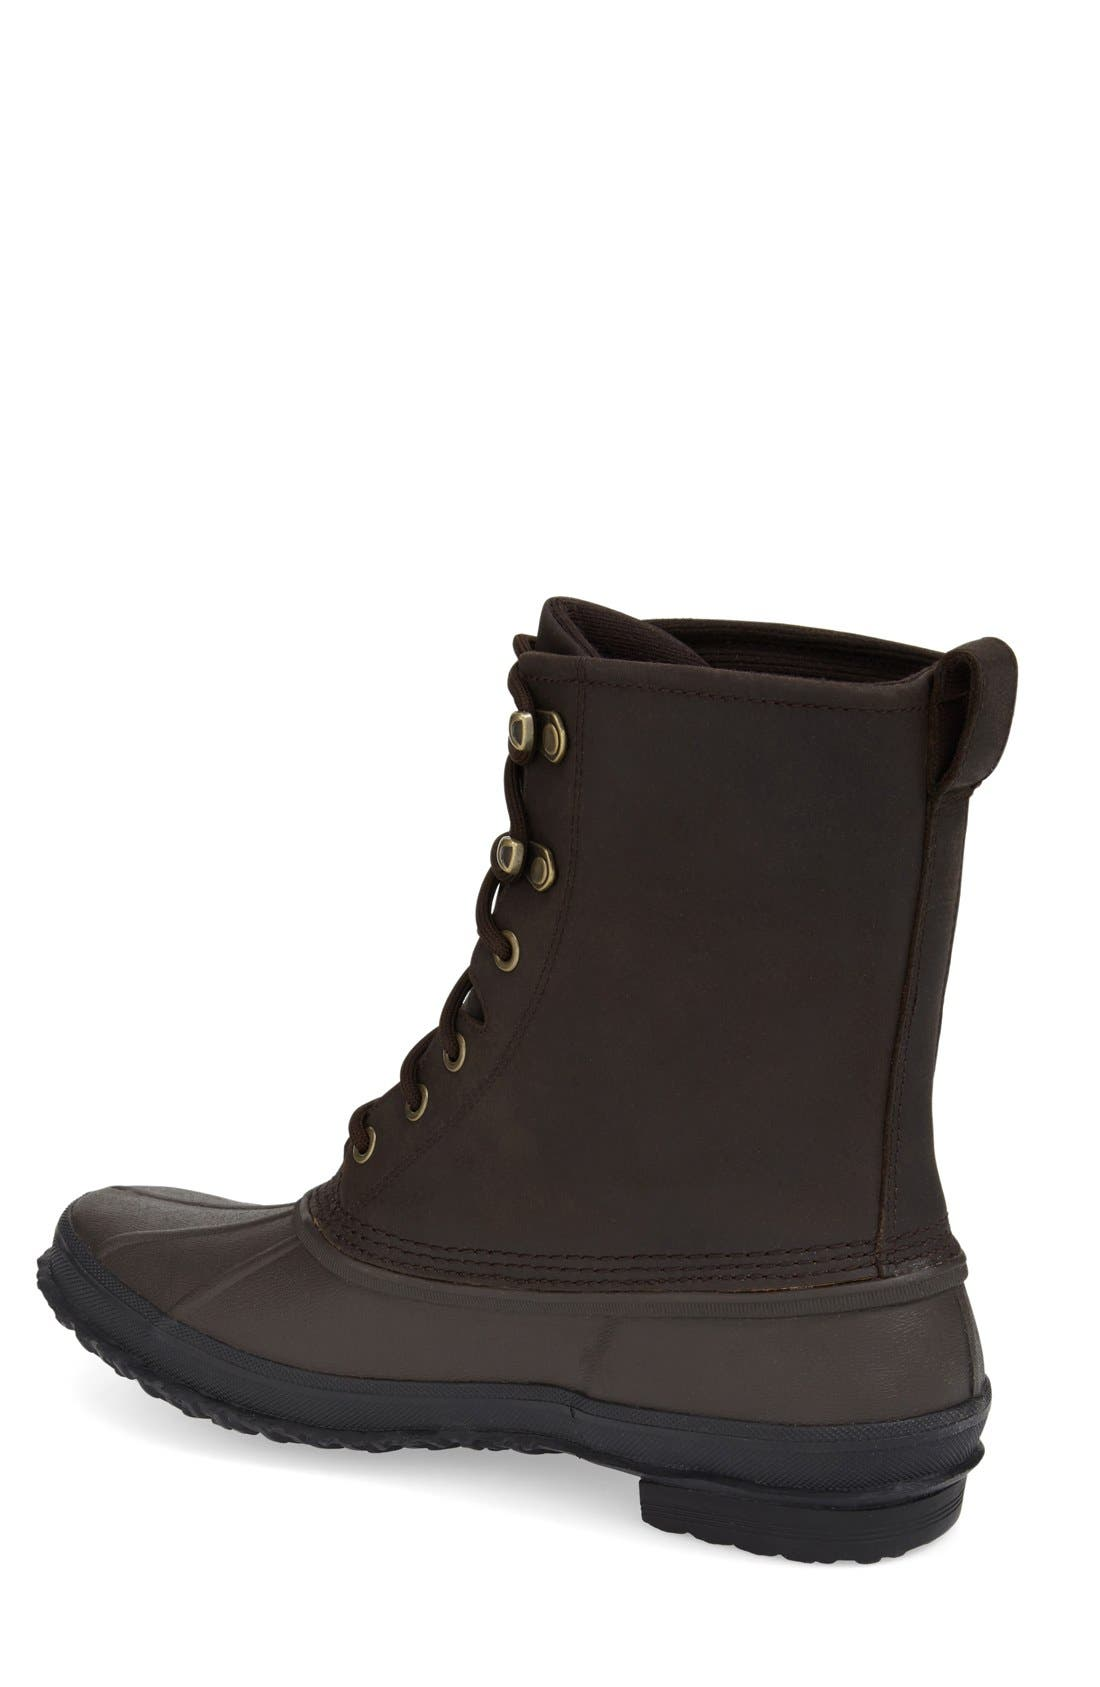 Yucca Rain Boot,                             Alternate thumbnail 2, color,                             STOUT